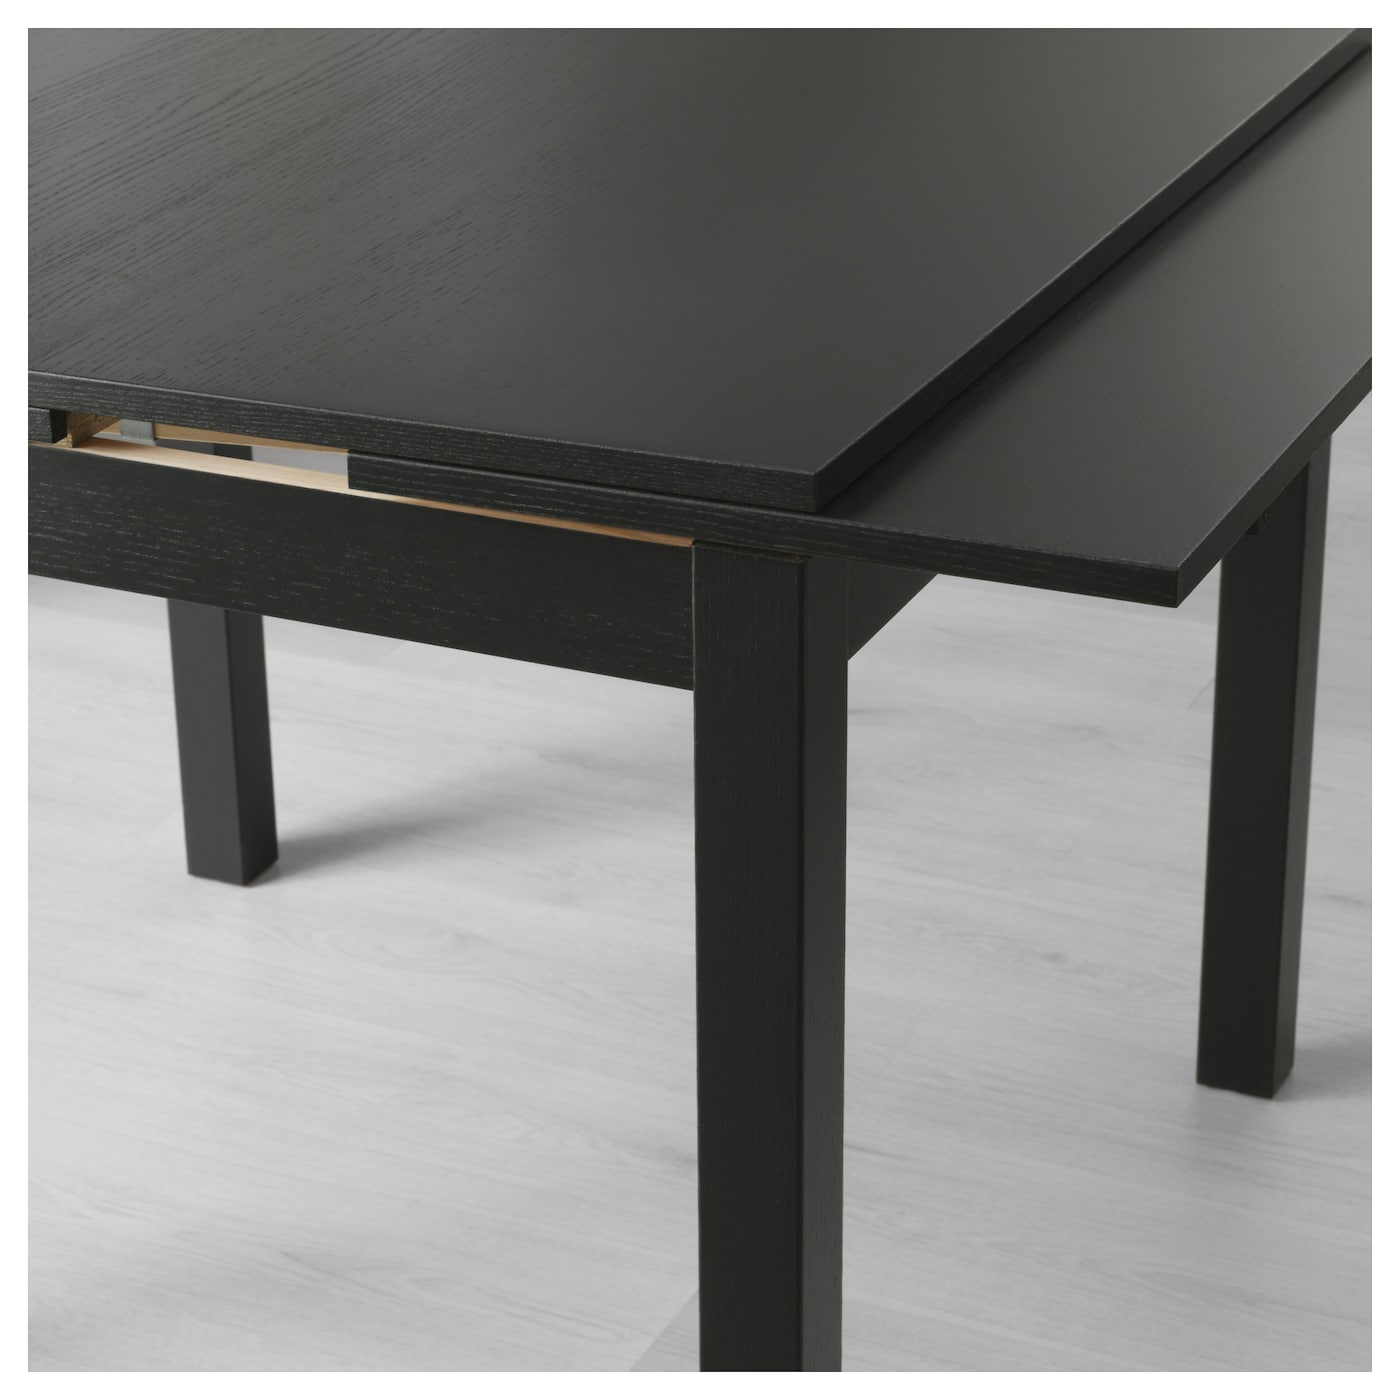 Bjursta extendable table brown black 90 129 168x90 cm ikea for Table carree avec rallonge